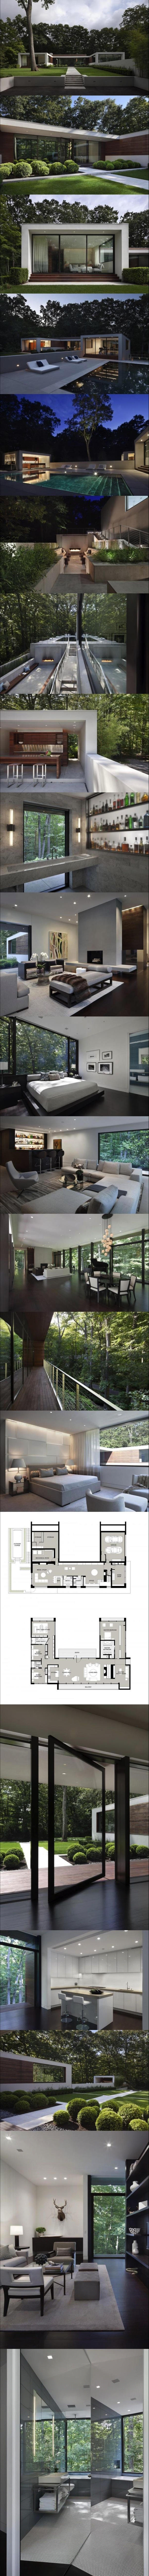 New Canaan Residence / Specht Harpman Architects: Specht Harpman Location: New Canaan, Connecticut Architect in Charge: Specht Harpman Interior Decoration: Carrier & Co. Area: 6000.0 sqm Project Year: 2011 Photographs: Elizabeth Felicell